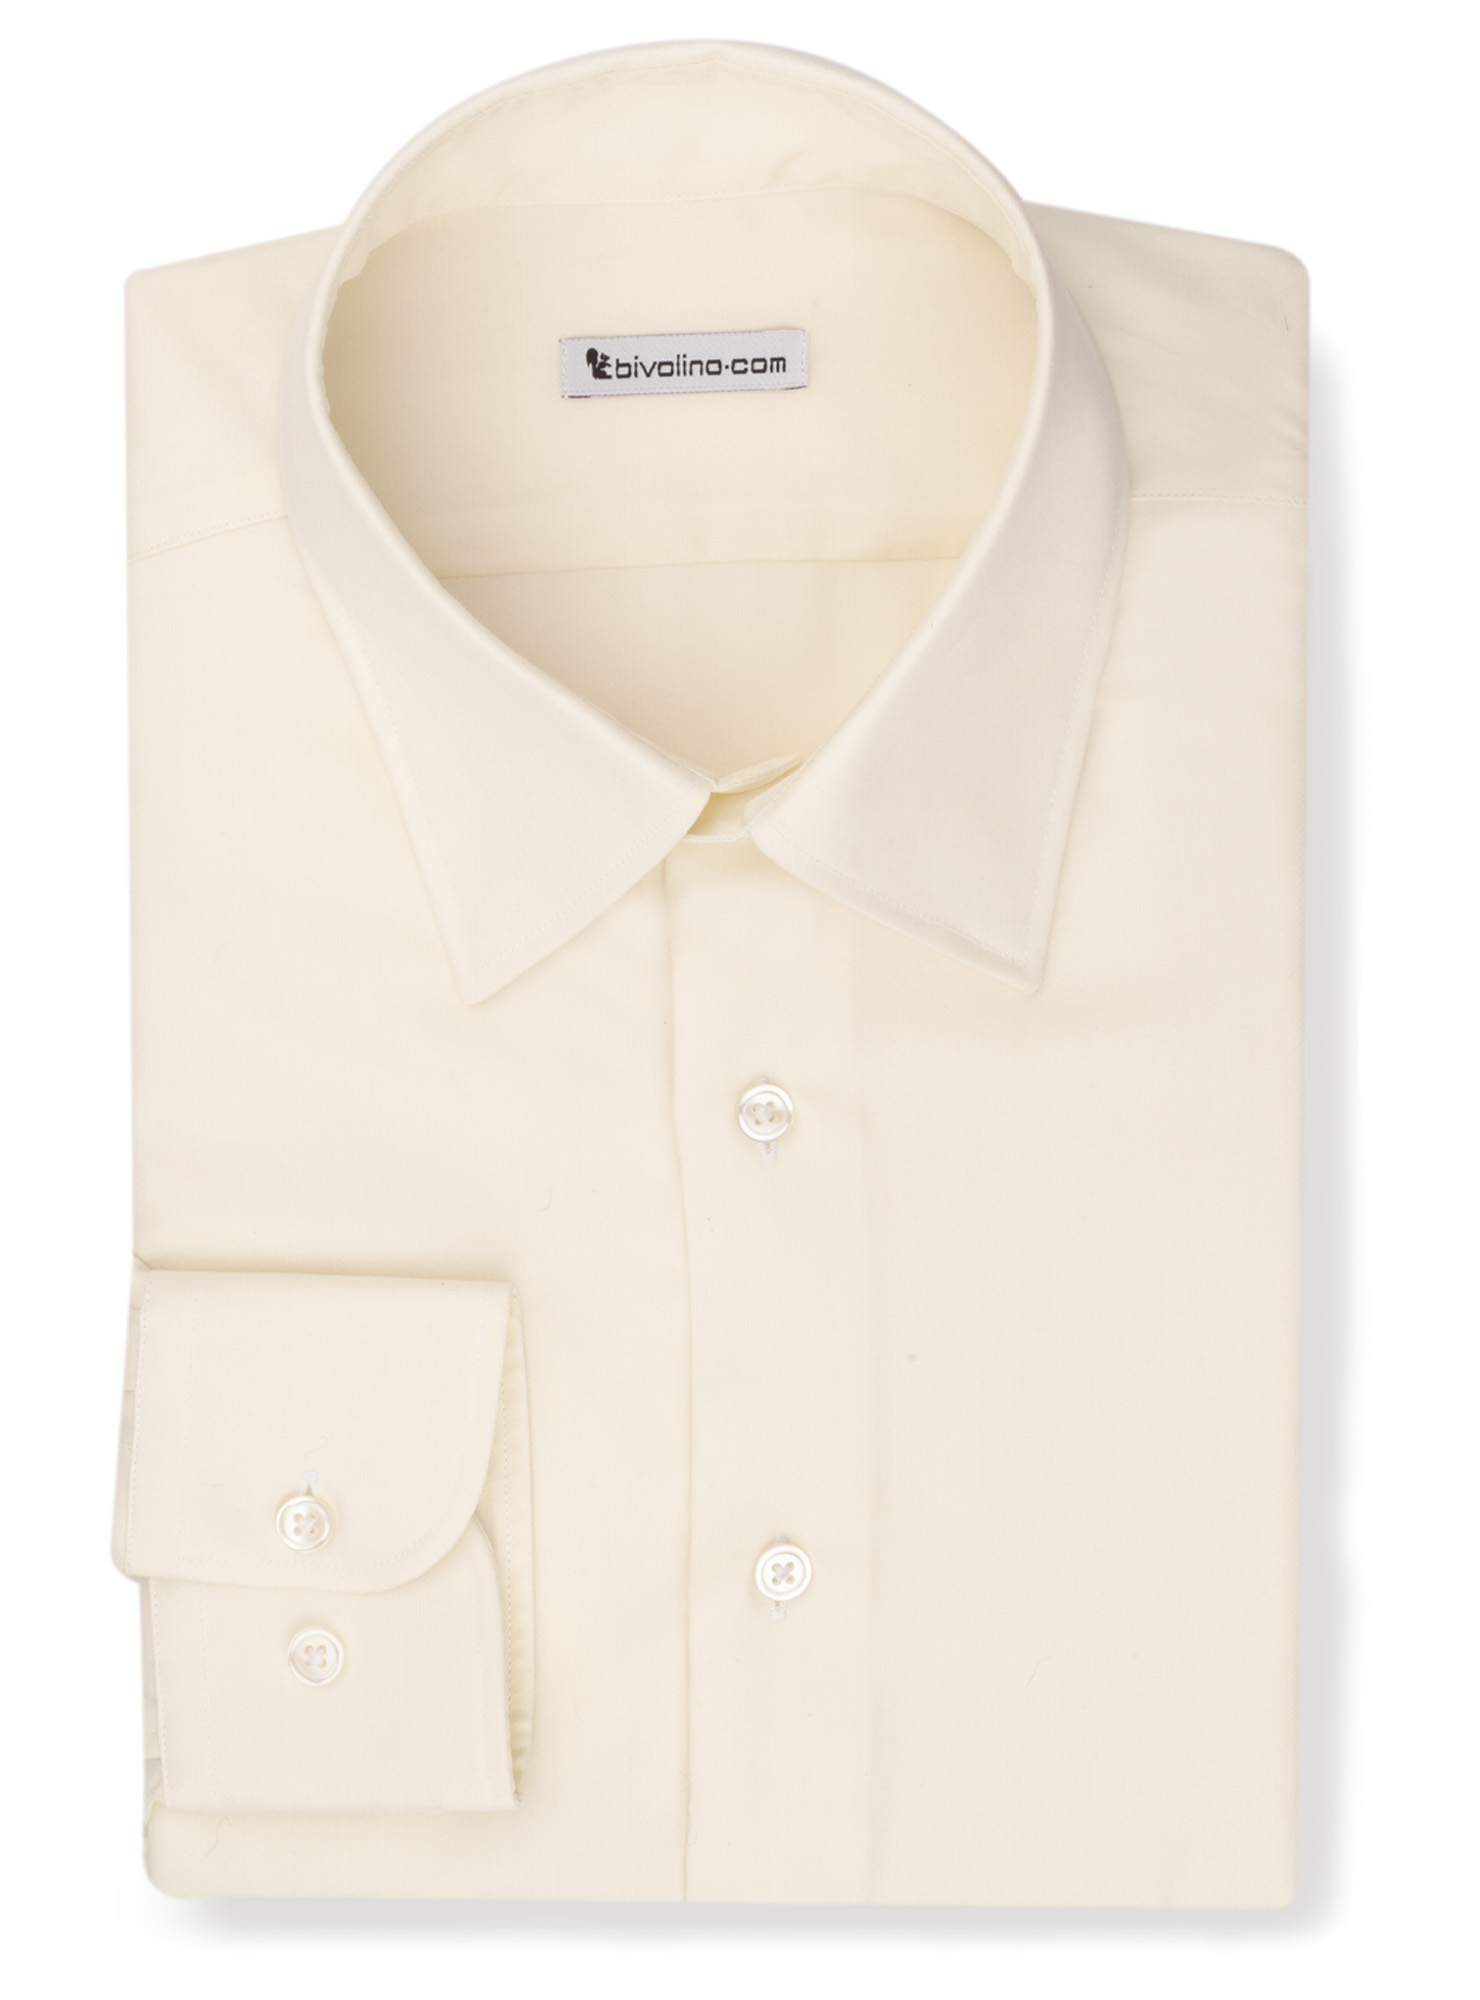 GROVINICI  -  yellow-ivory twill non-iron shirt - Opal 3